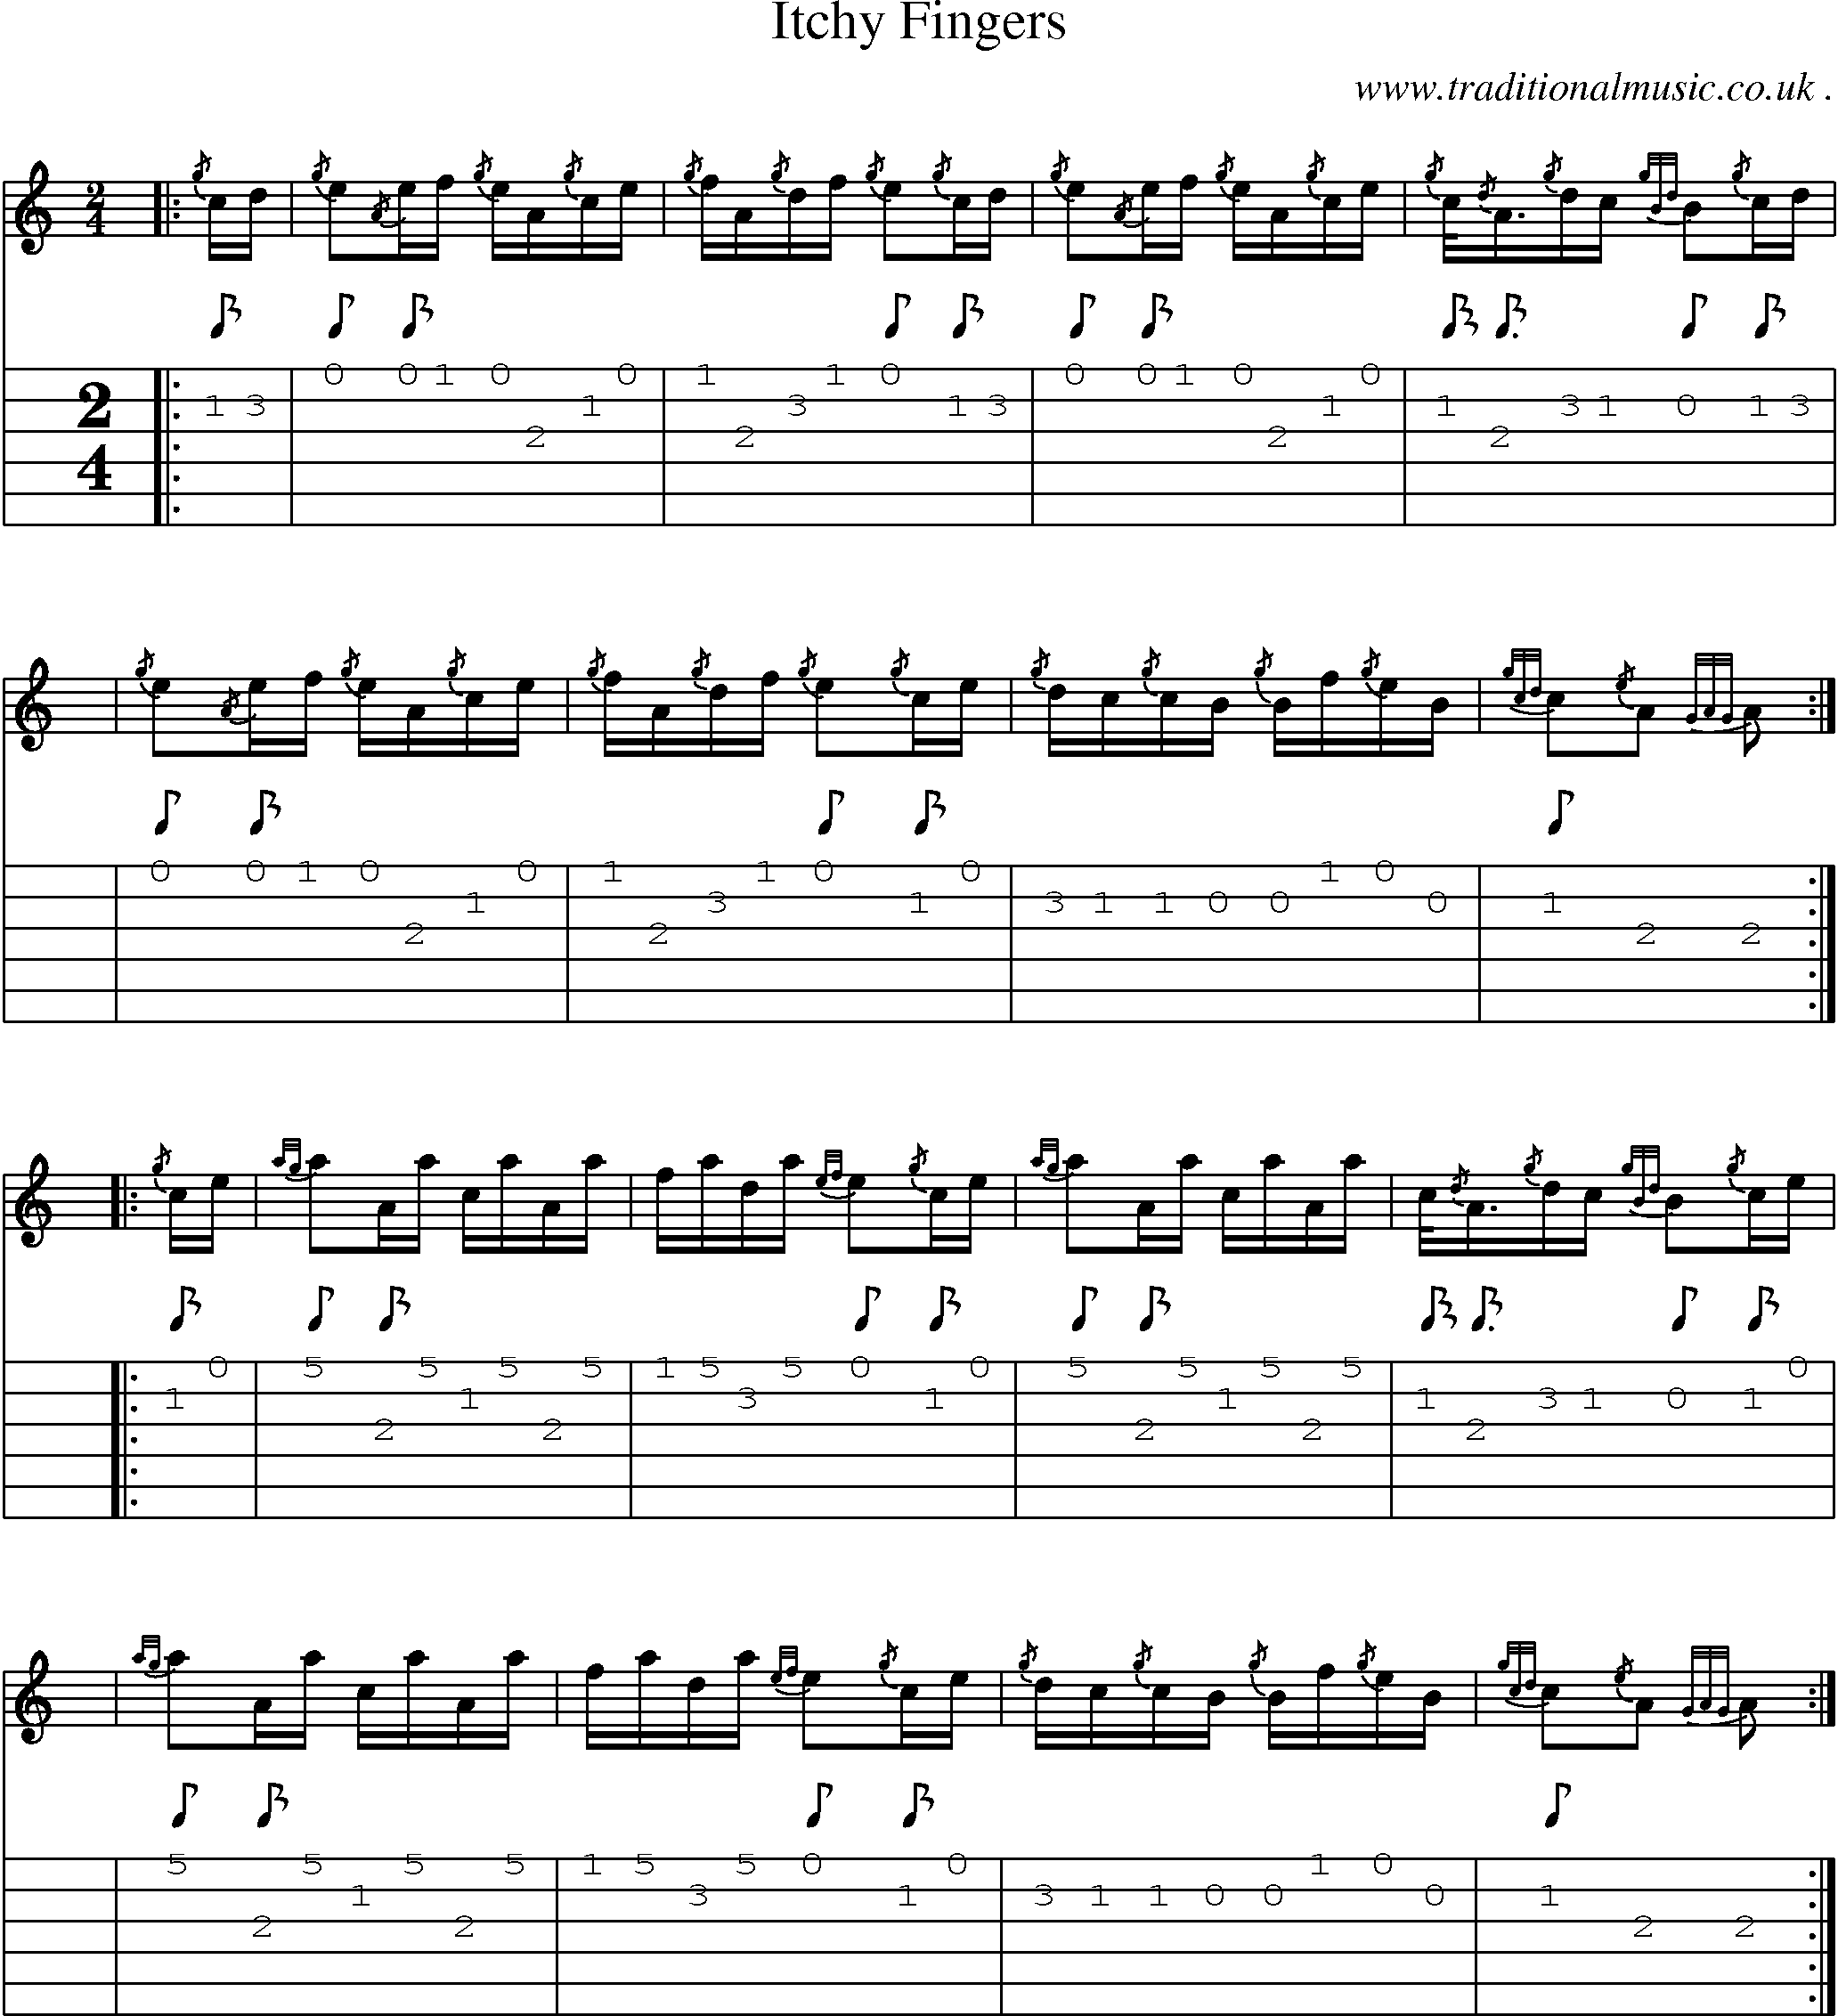 Scottish Tune, Score, Guitar Chords & Tabs: Itchy Fingers